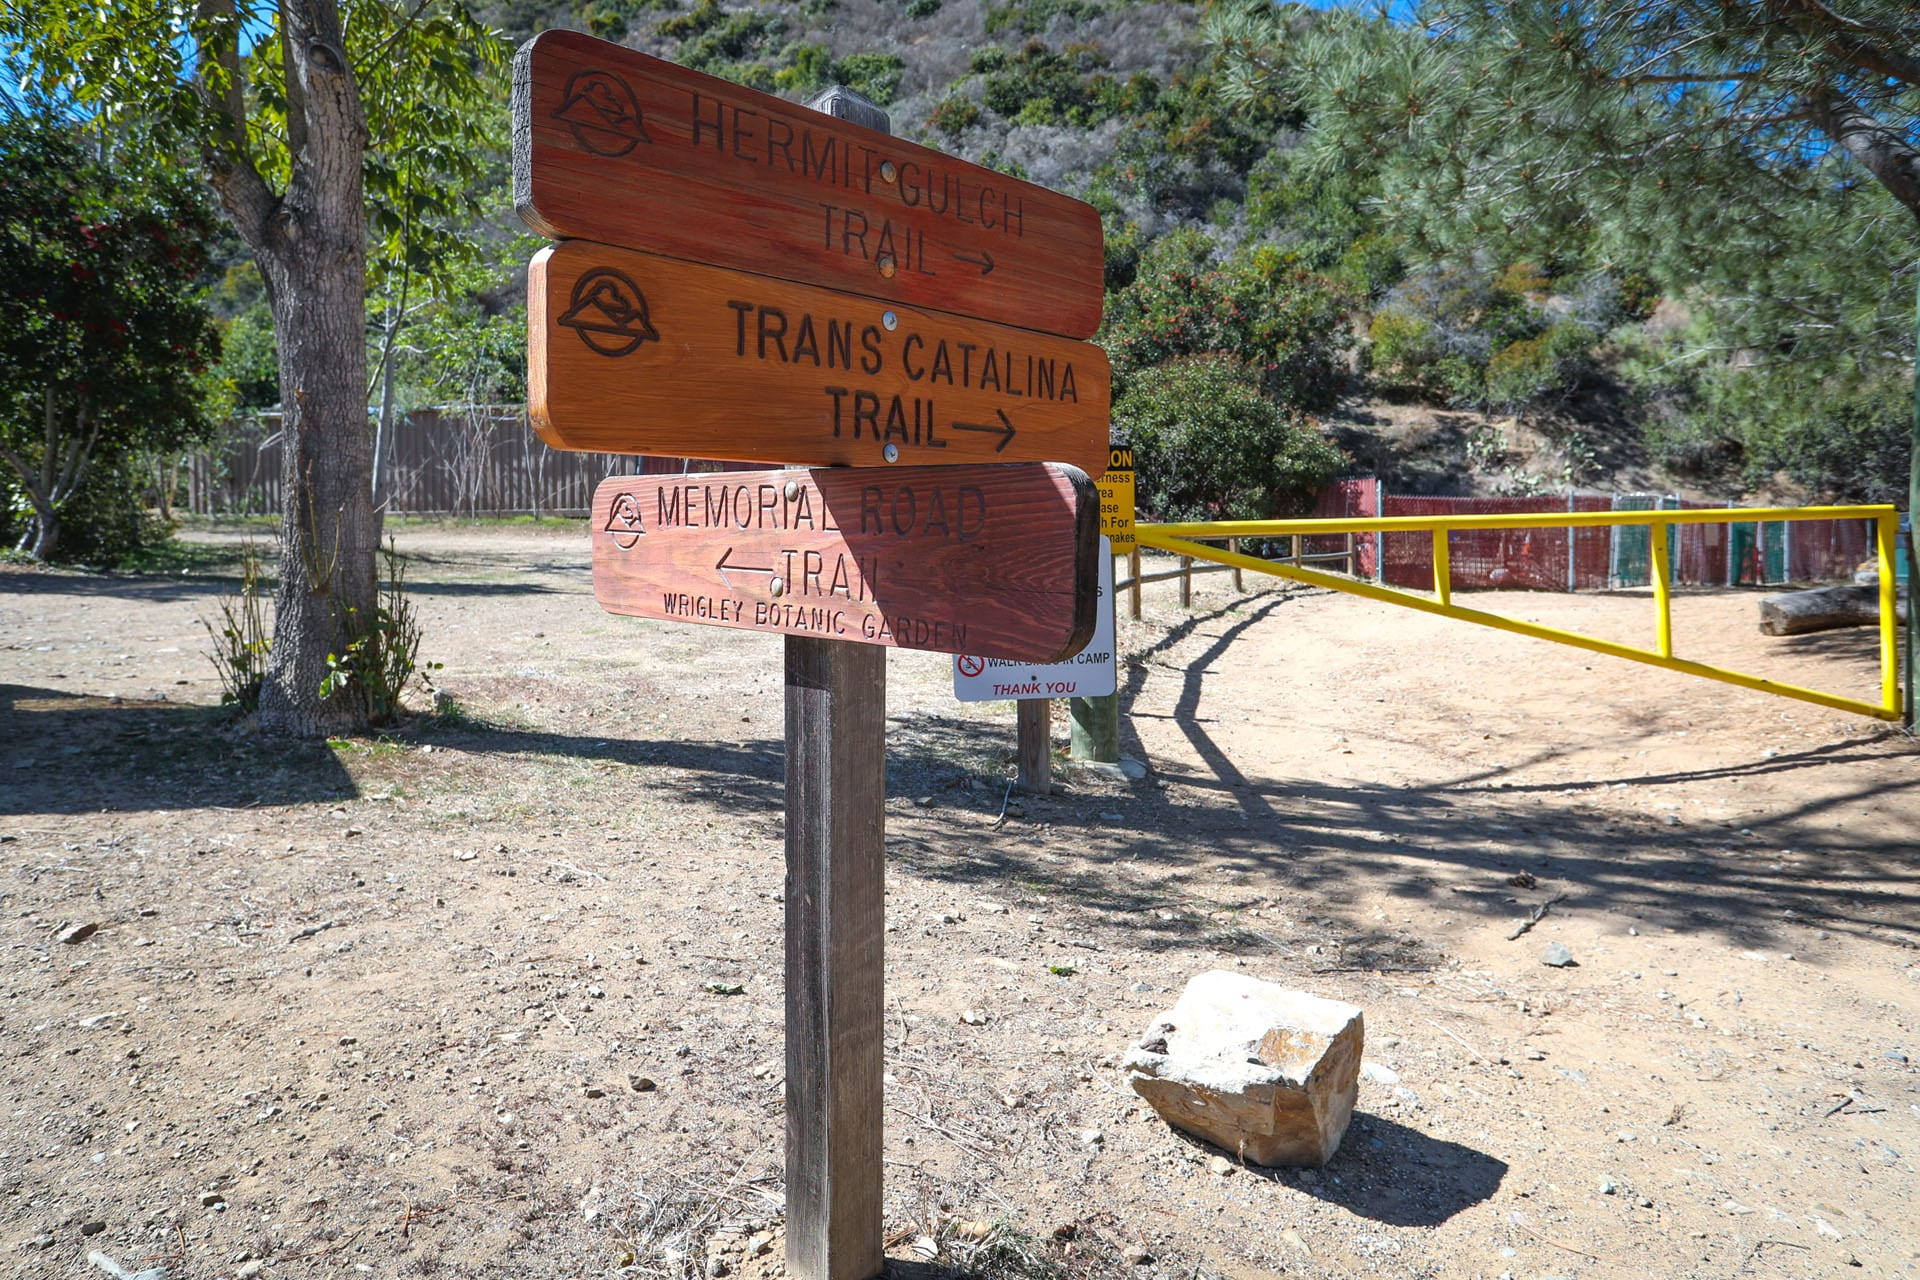 Signs: Hermit Gulch Trail. Trans Catalina Trail. Memorial Road Trail (Wrigley Botanic Garden).